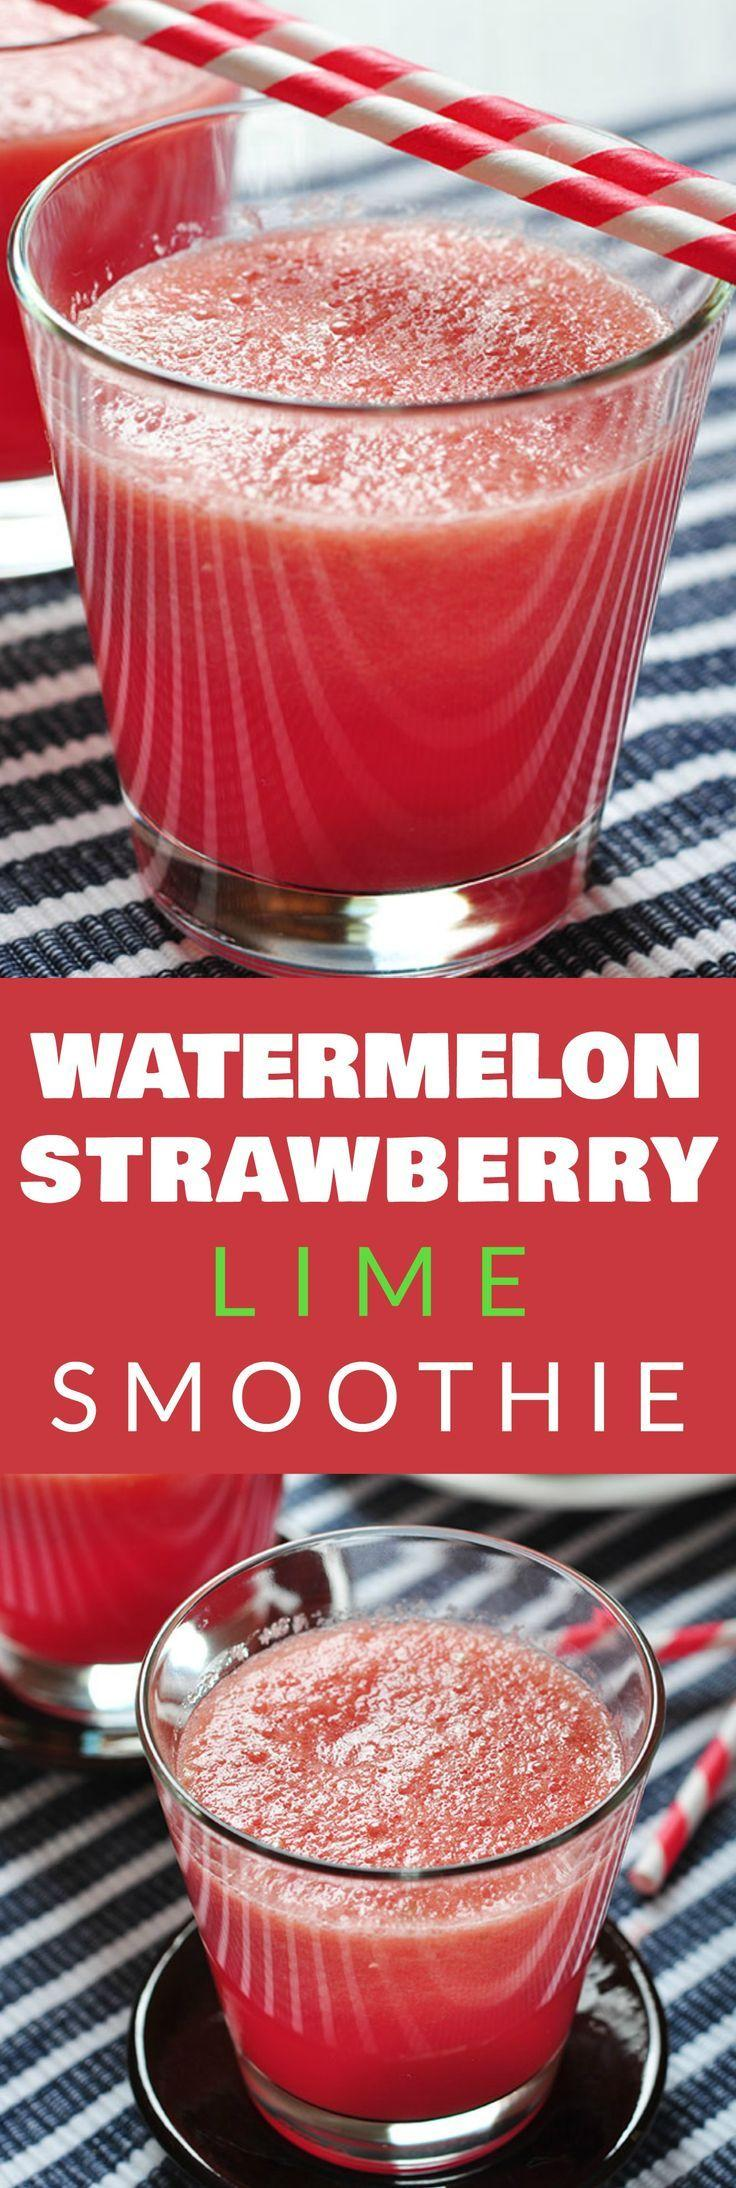 Wedding - Watermelon Strawberry Lime Smoothie